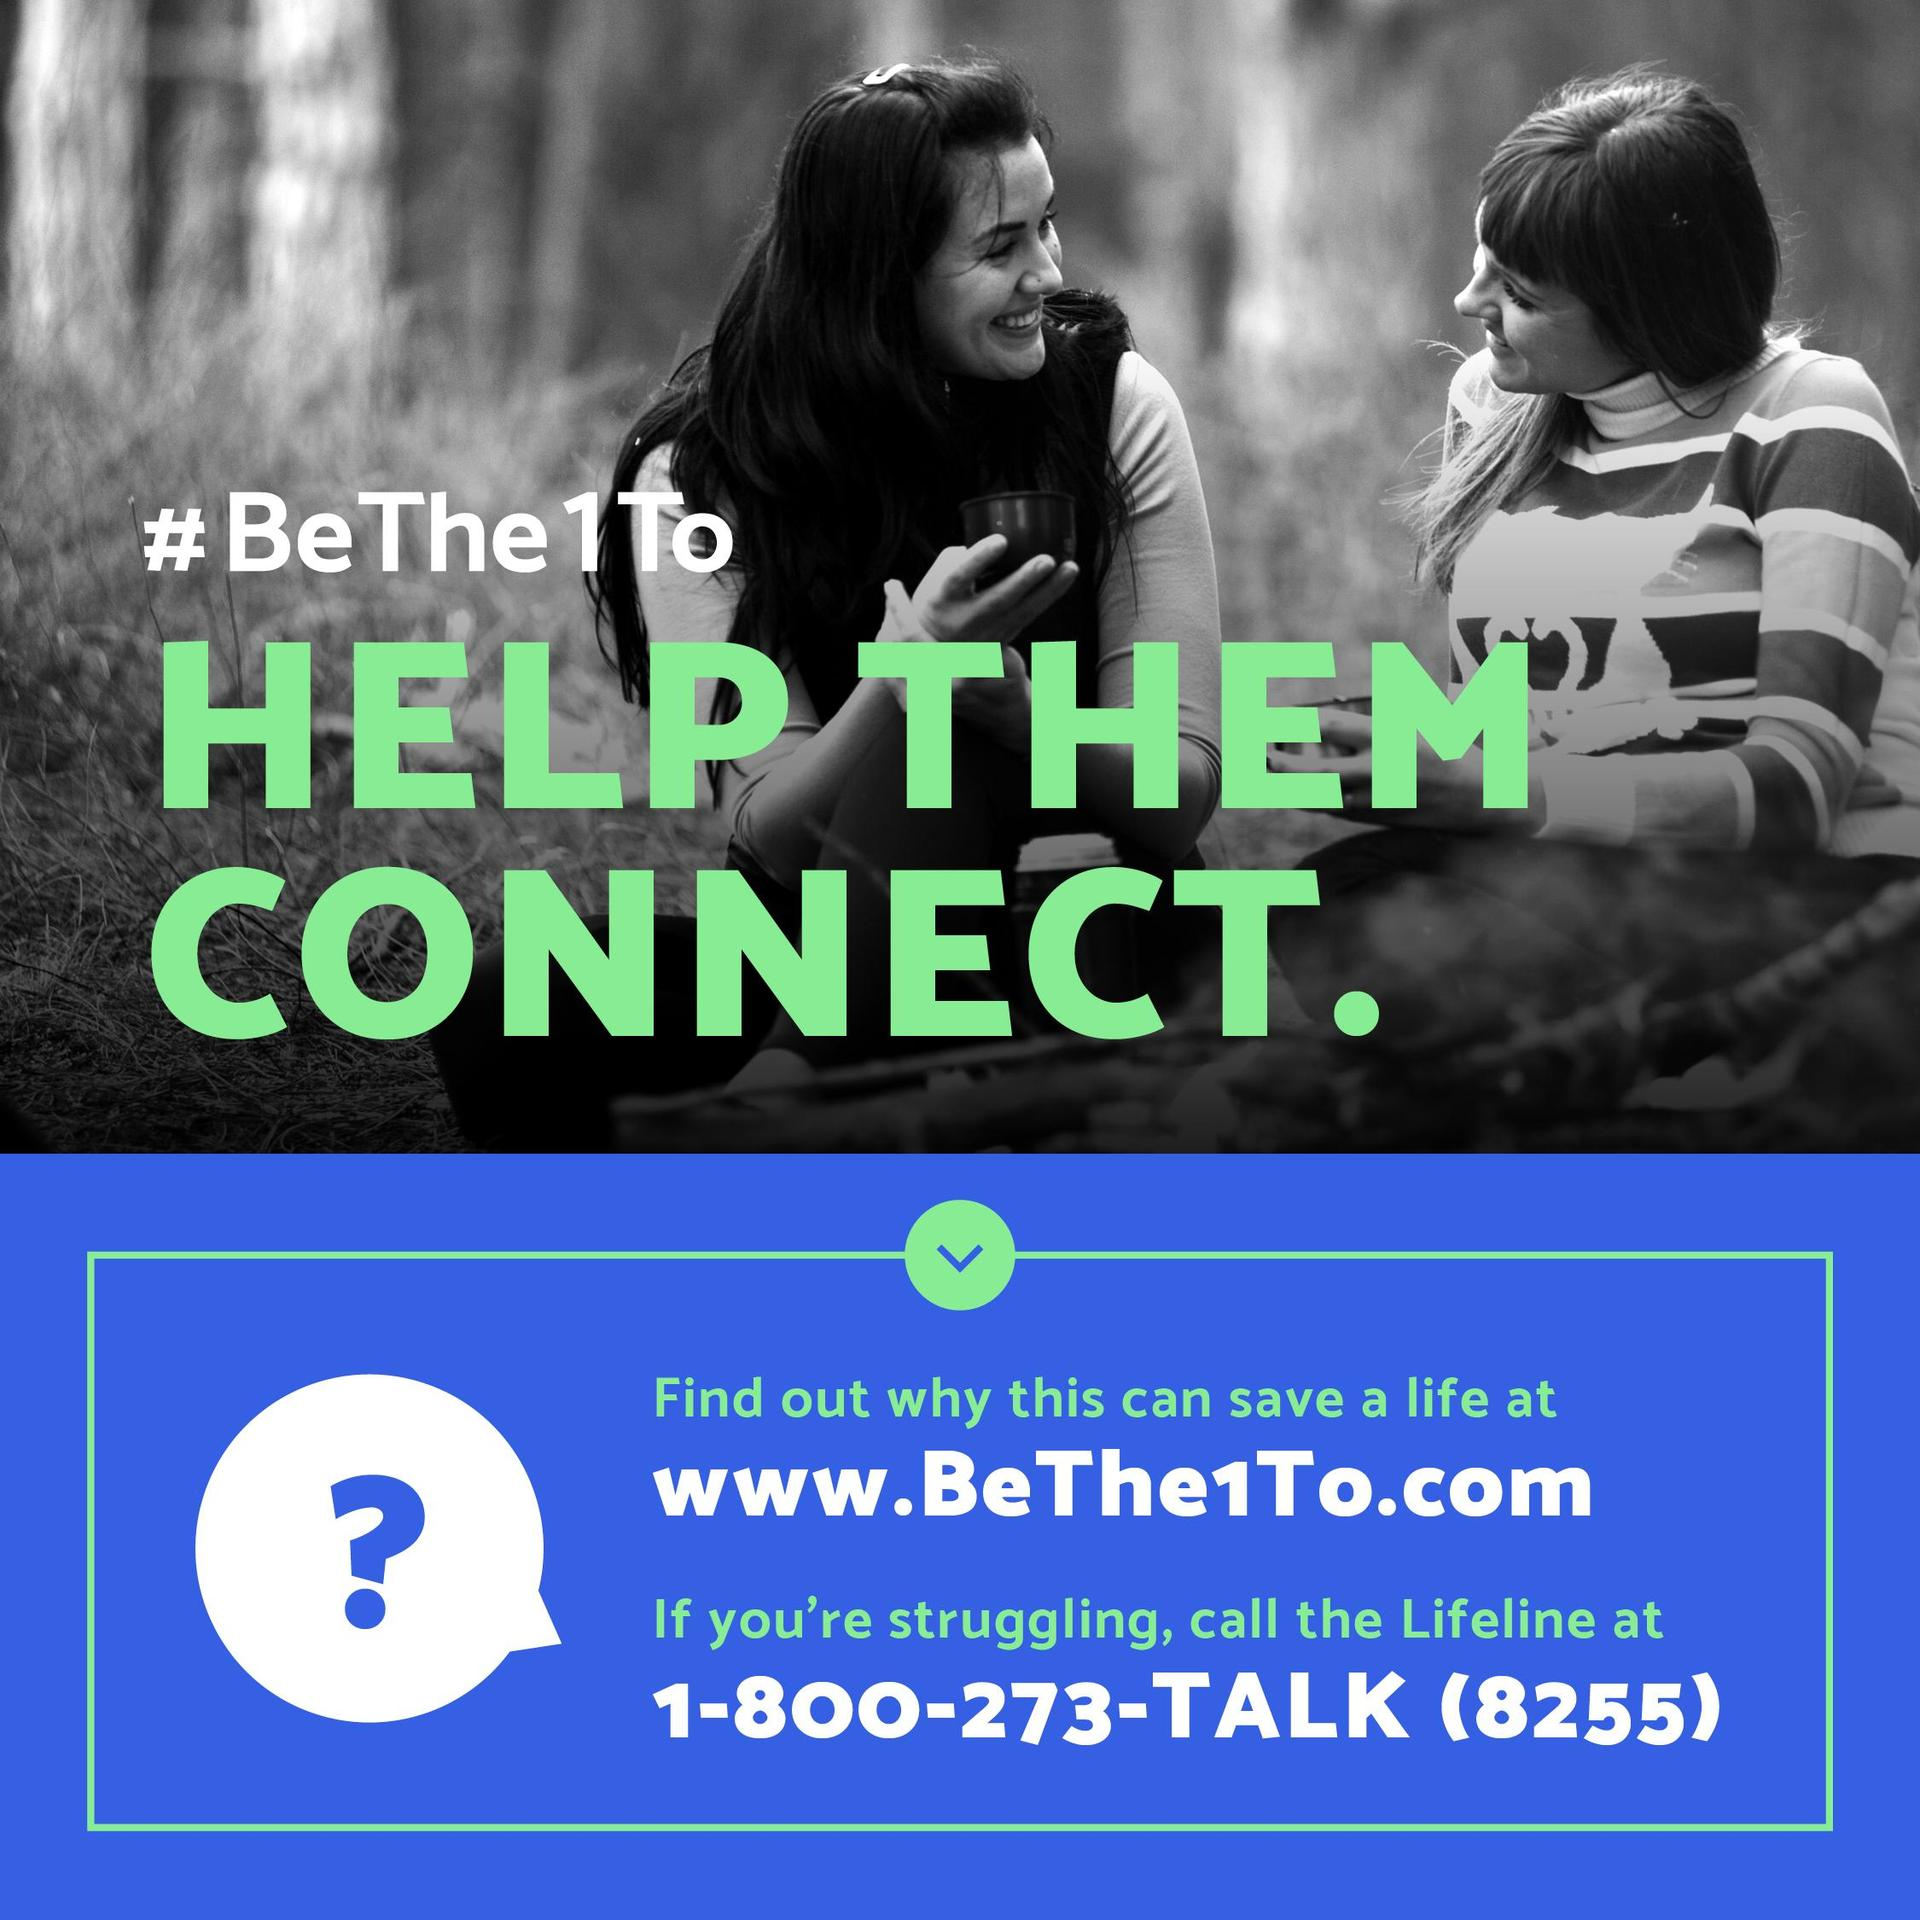 Be the one to help them connect